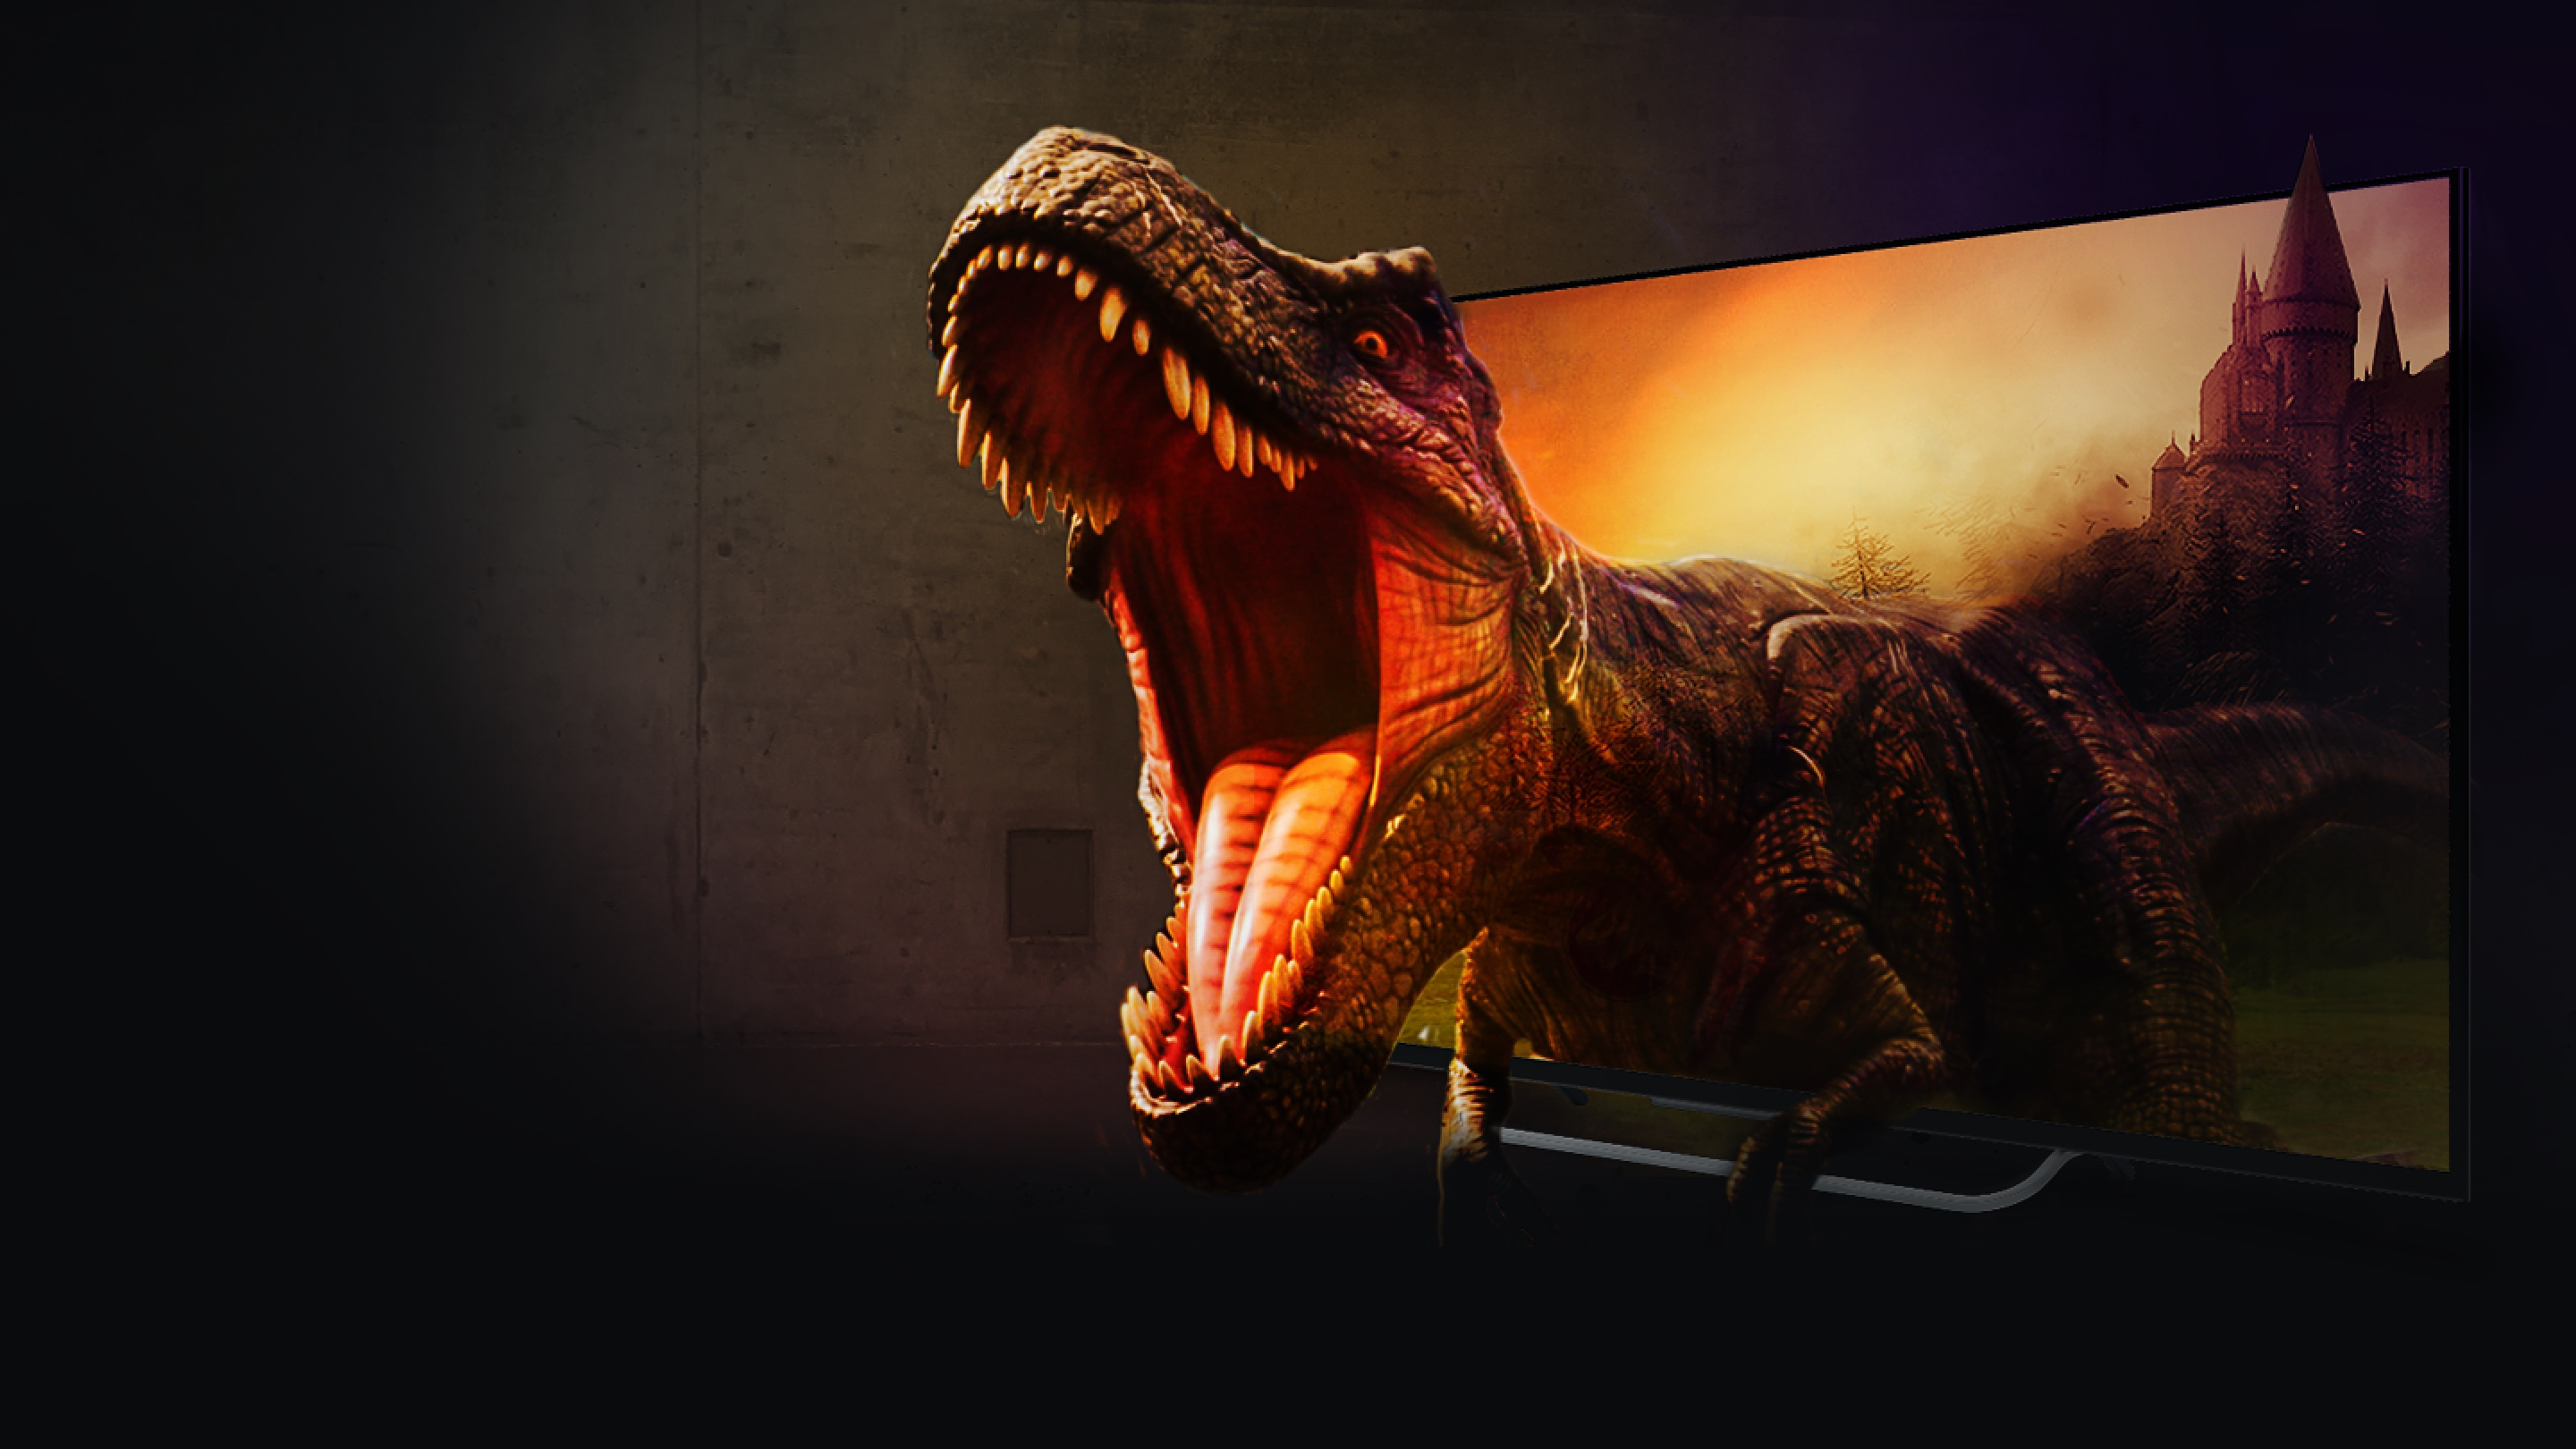 T-rex coming out of a 4K TV